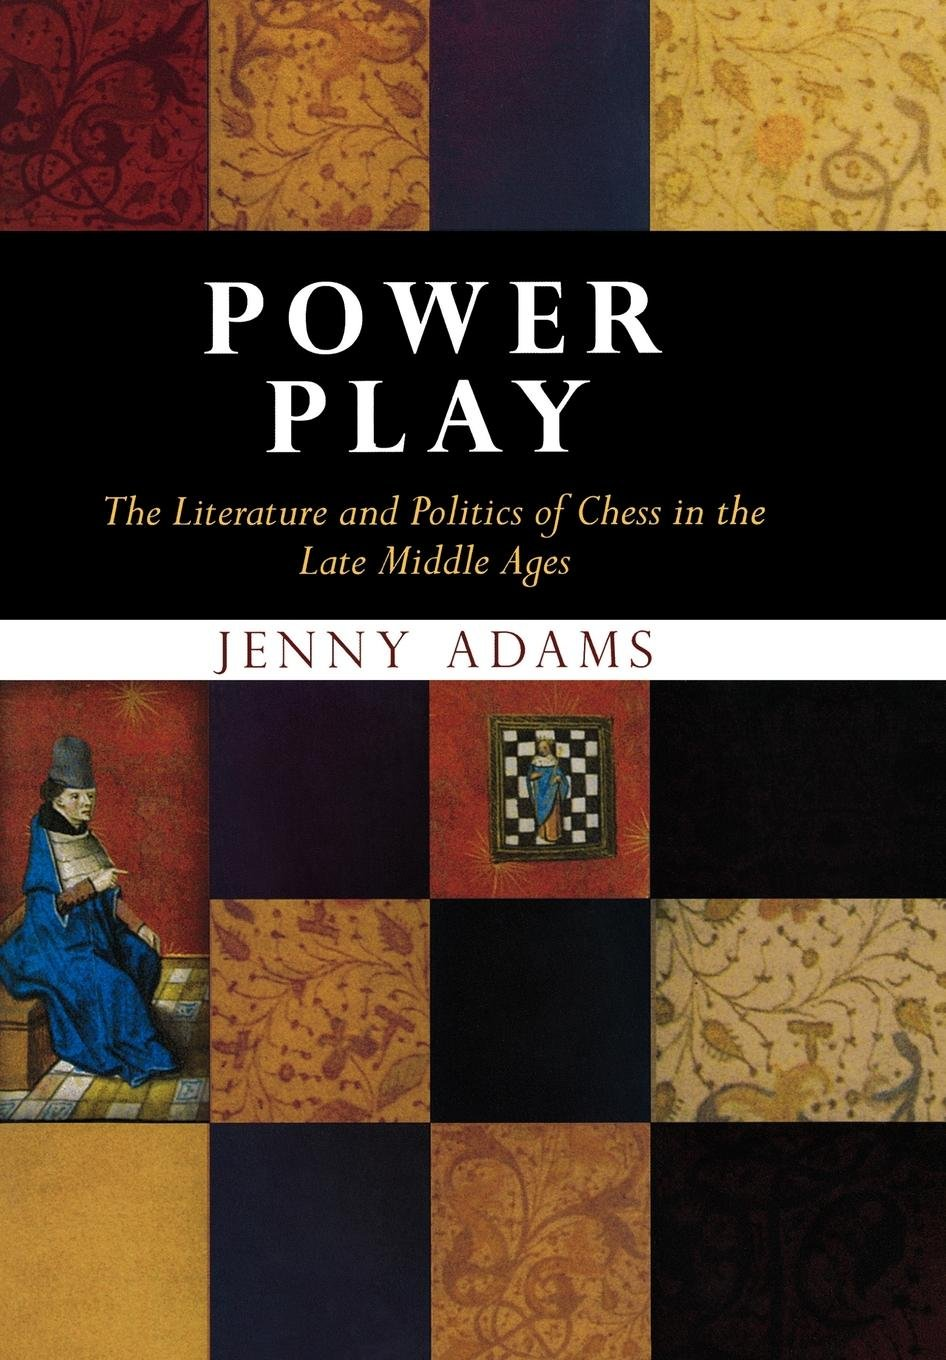 Download Power Play: The Literature and Politics of Chess in the Late Middle Ages (The Middle Ages Series) ebook